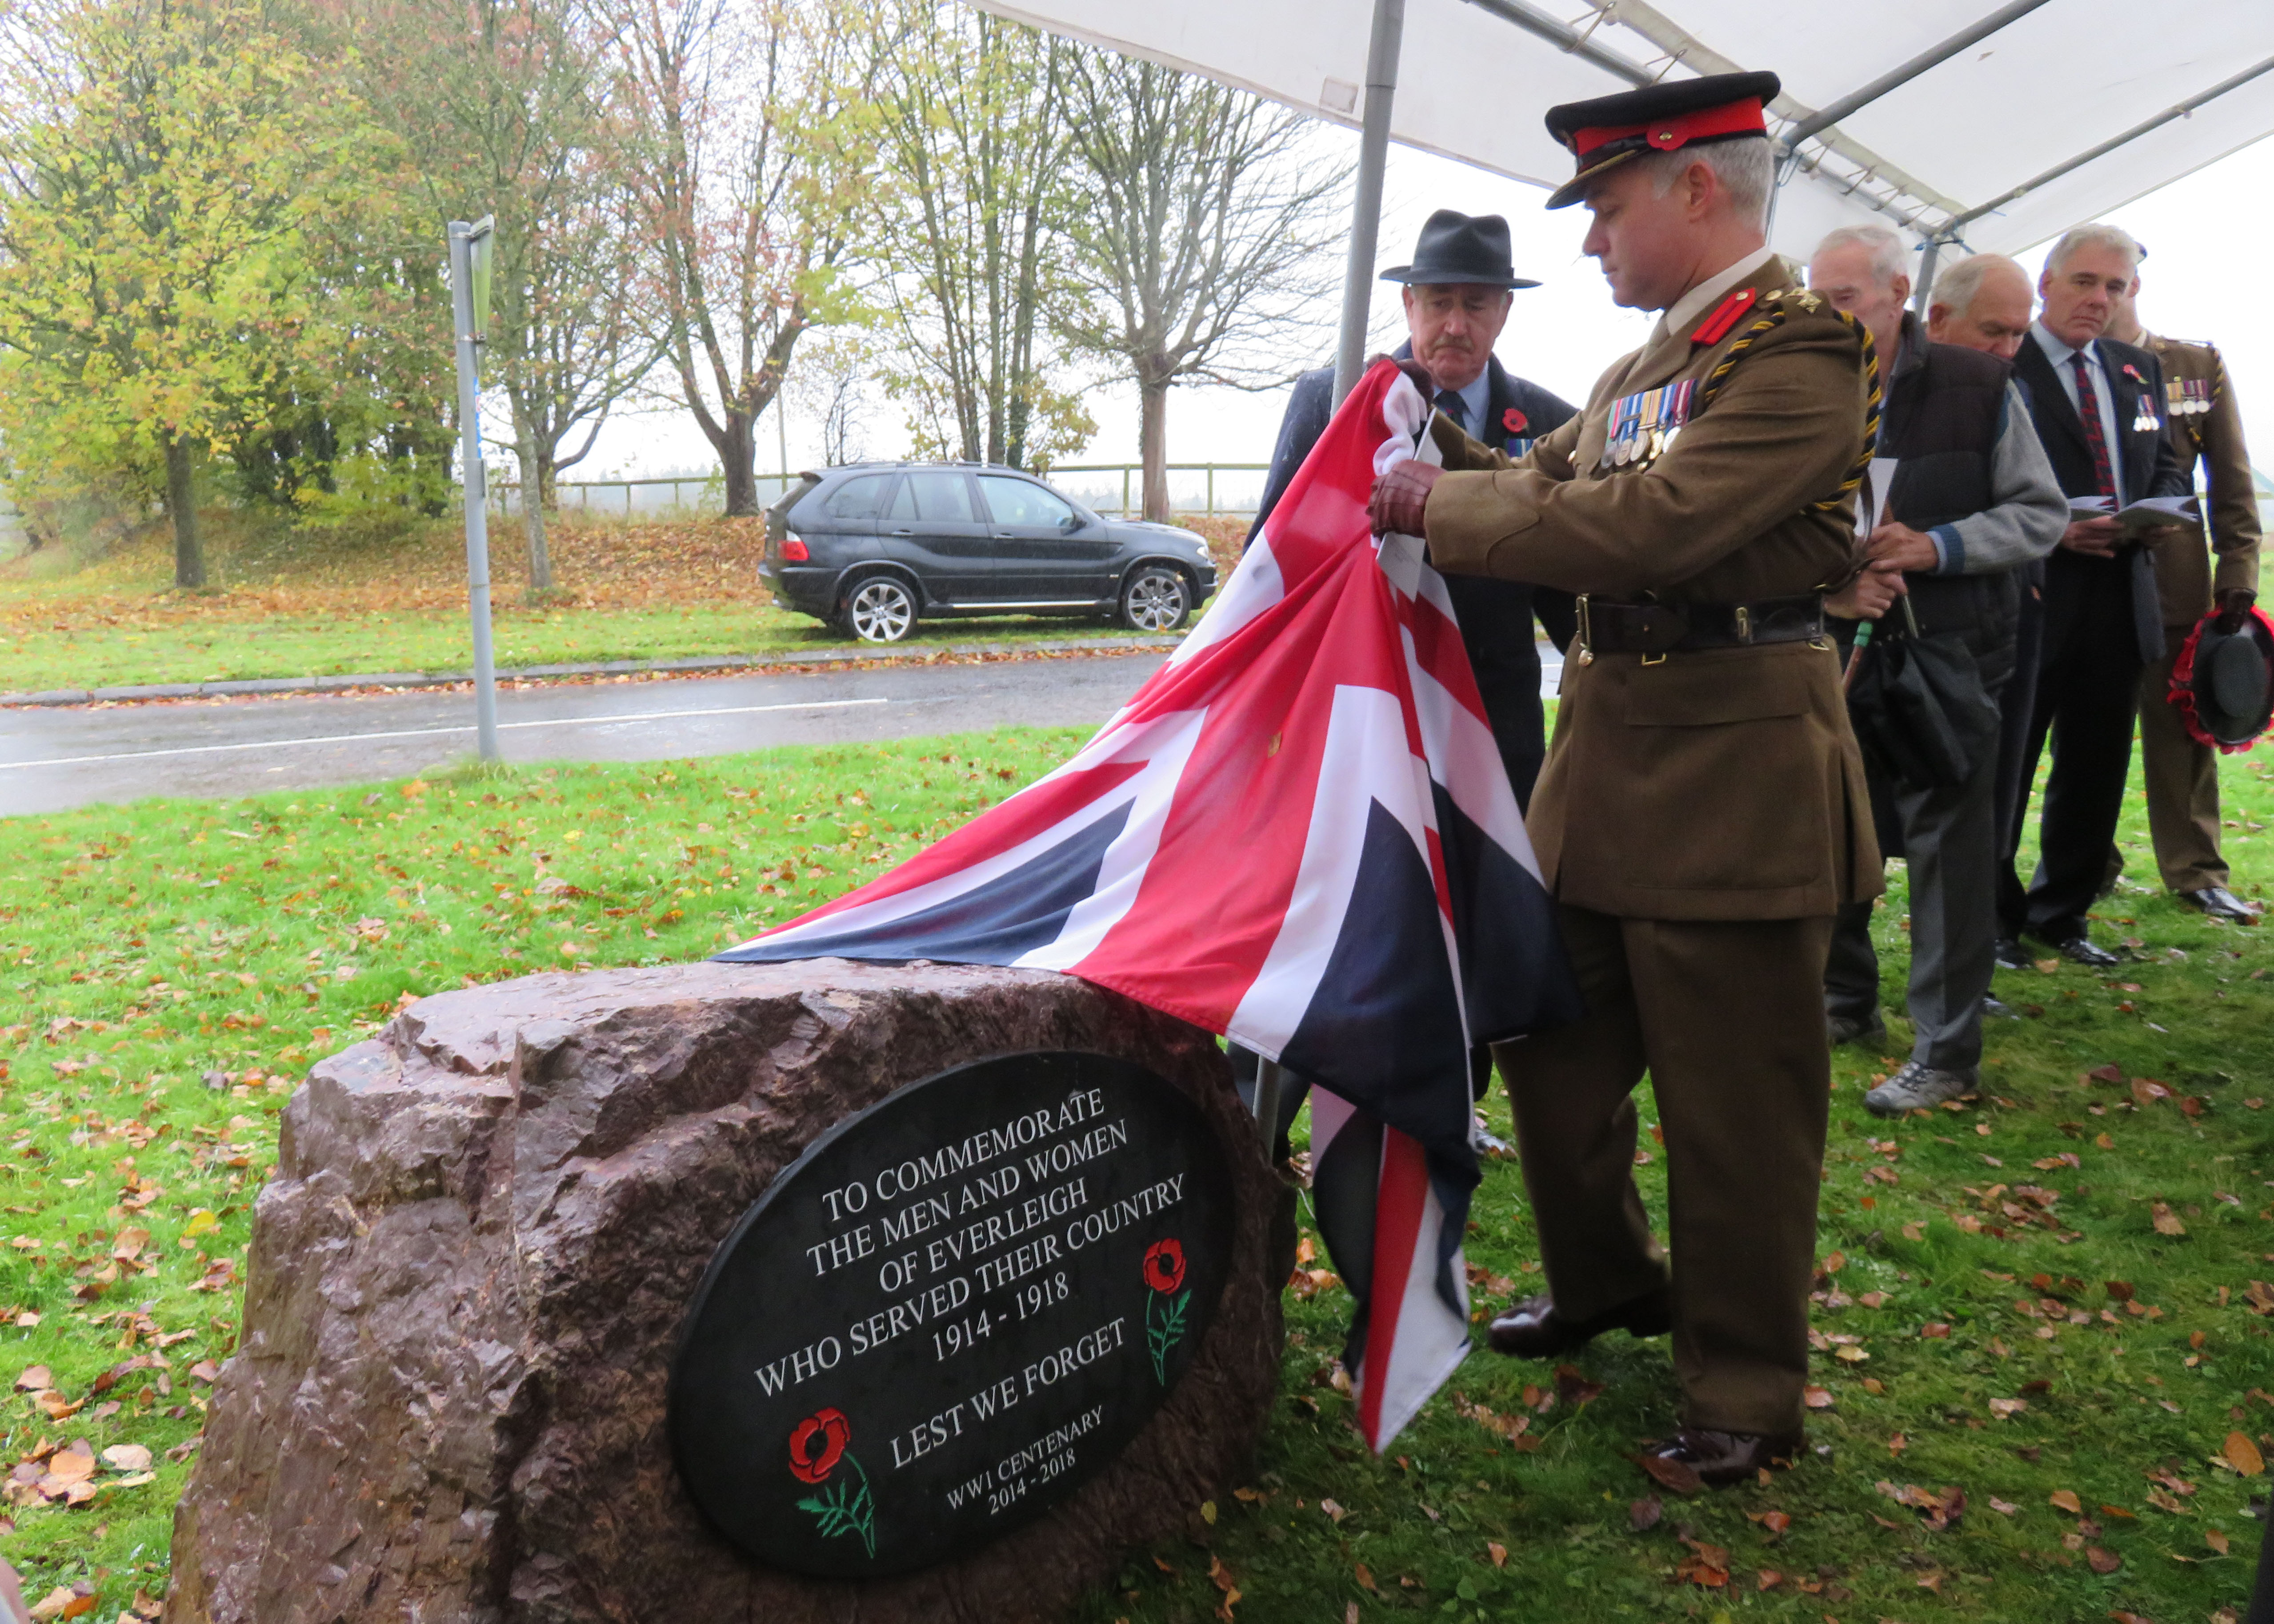 img_6210-2016_1112-everleigh-memorial-stone-unveiling